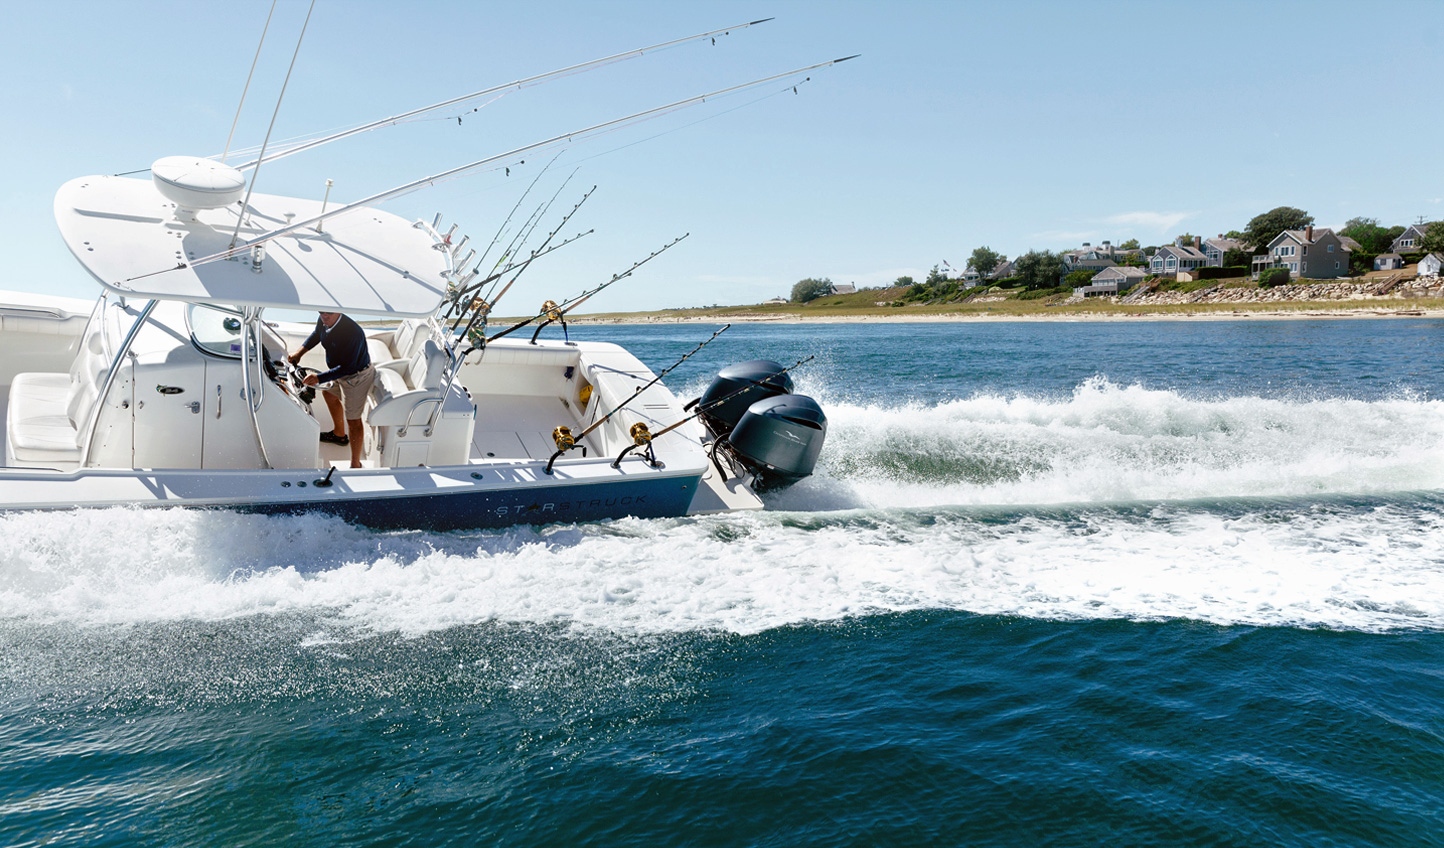 Head out into the Atlantic Ocean on one of the hotel's many privately owned boats